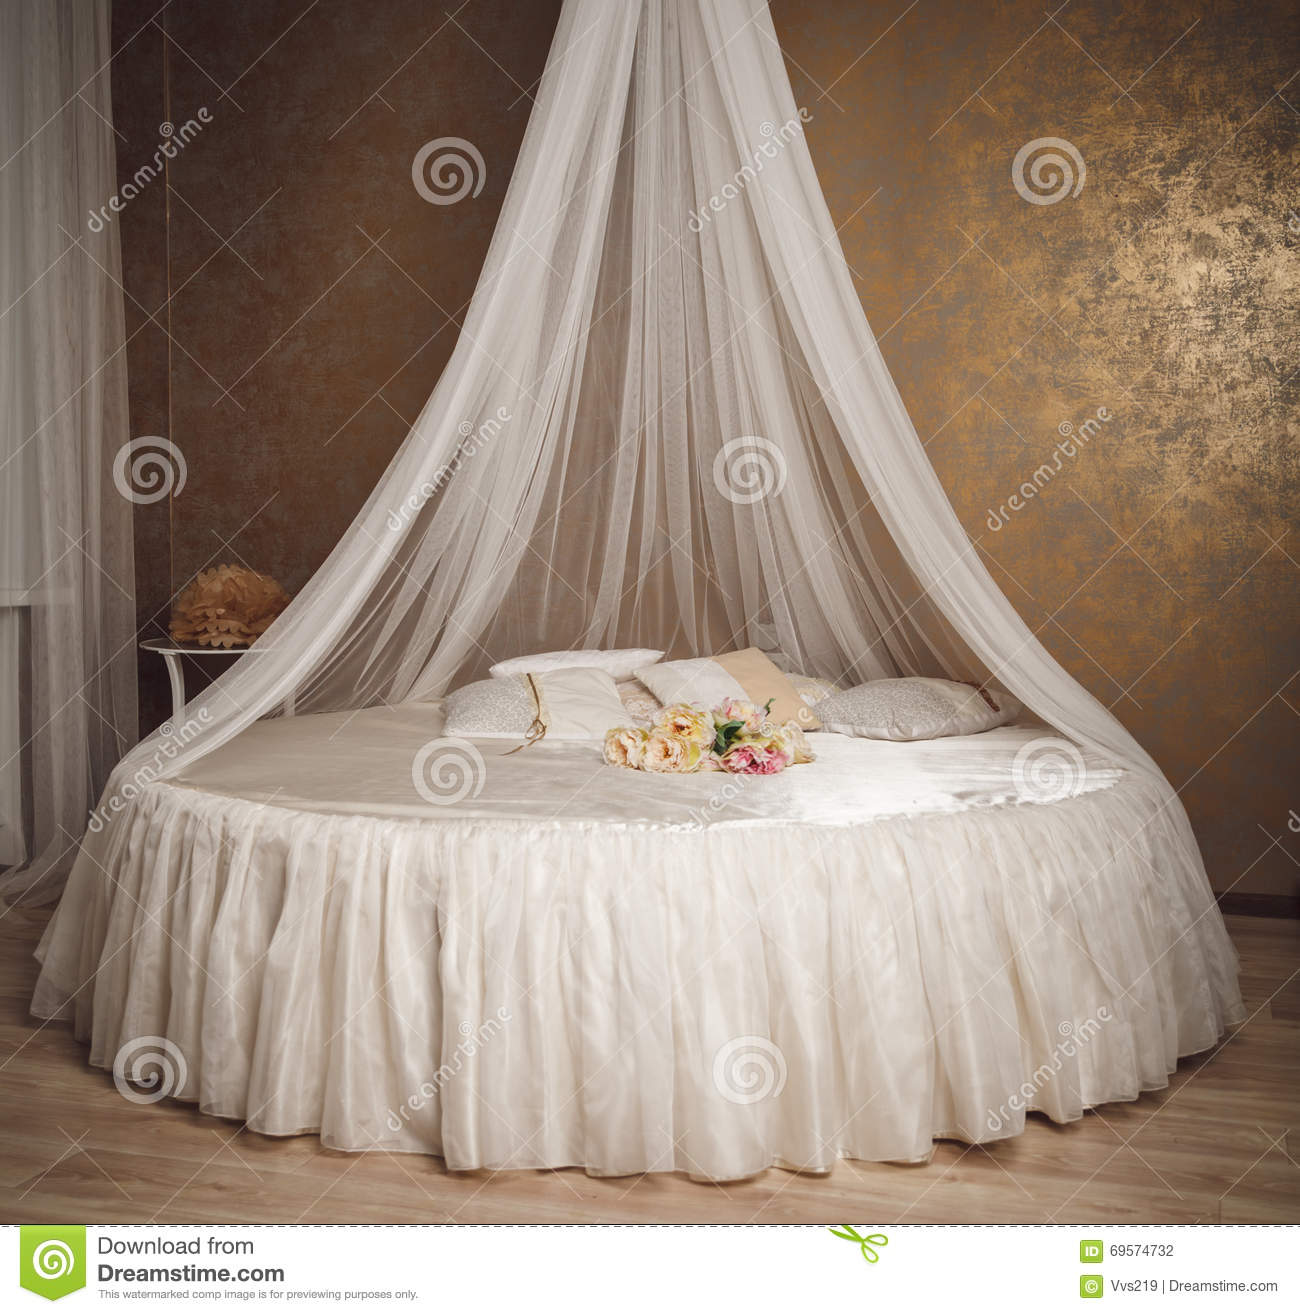 Home Interior With White Circle Bed Canopy